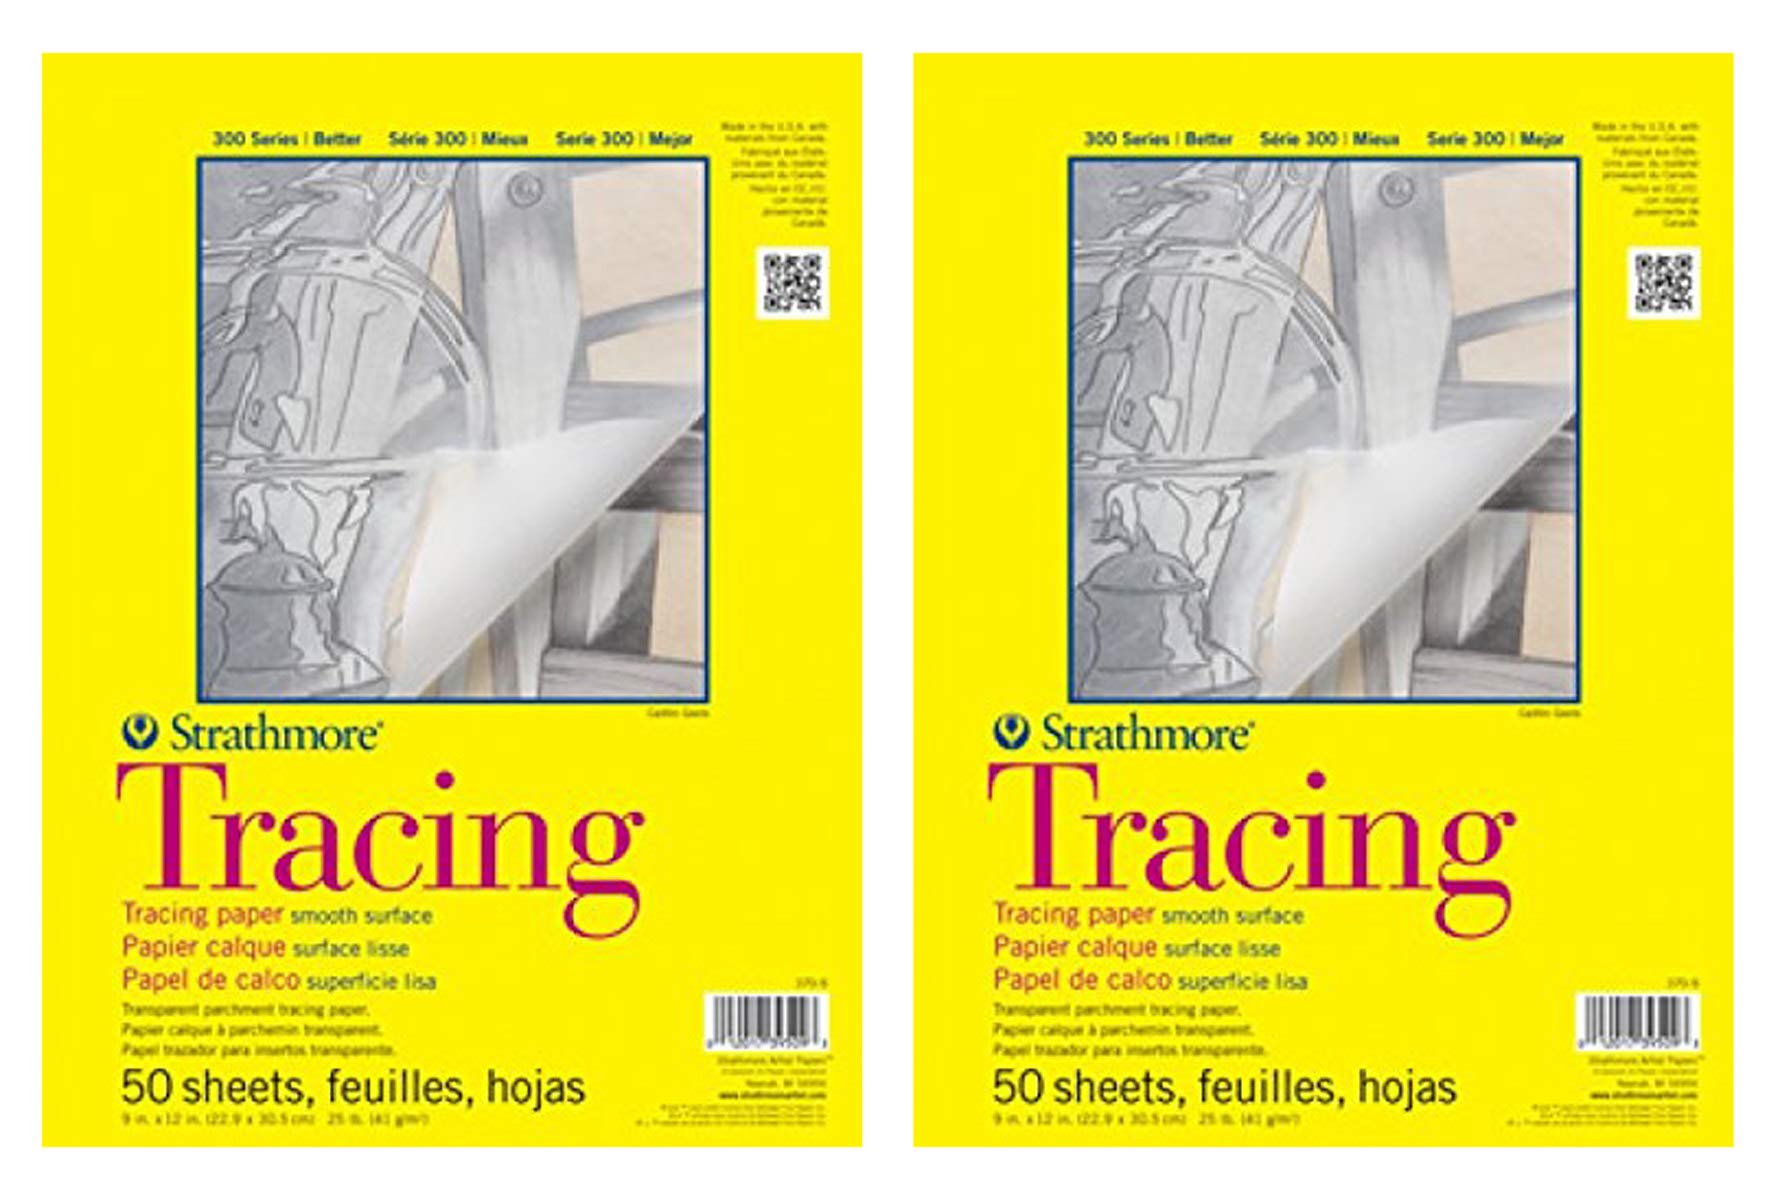 Strathmore aeqw 300 Tracing Pad 11X14 50 Sheets 2 Pack by Strathmore